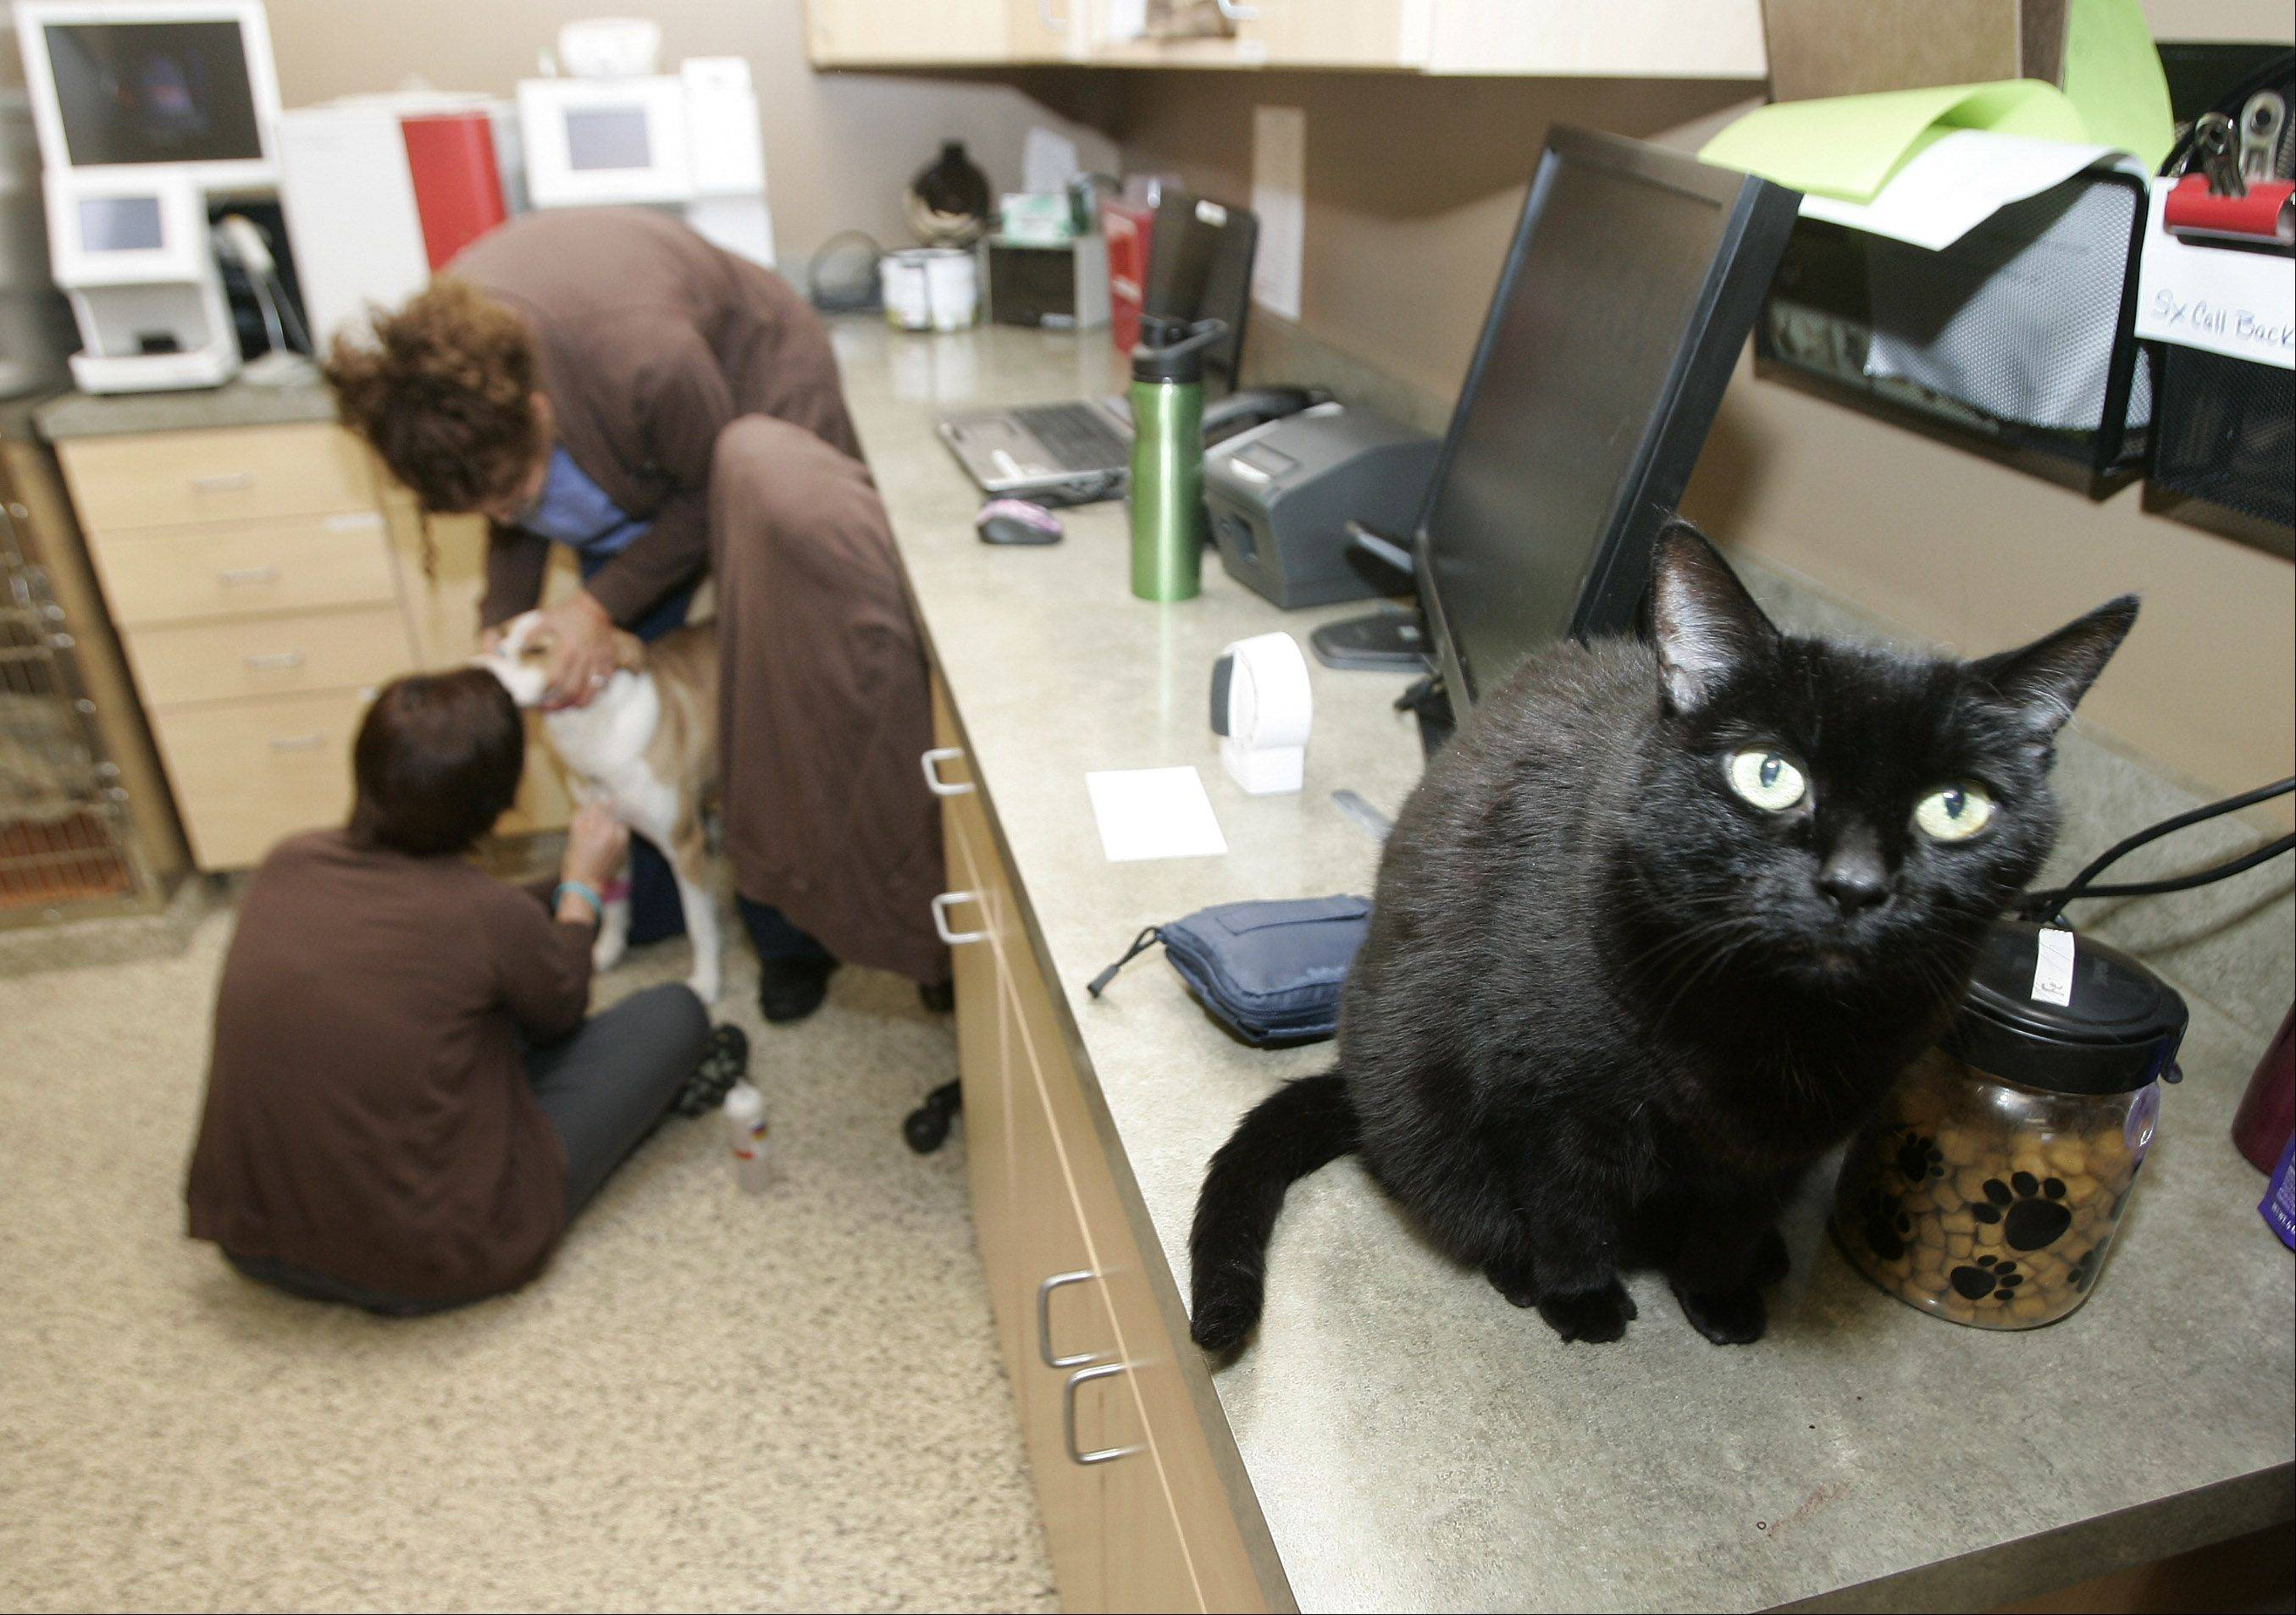 House cat Nala sits on a counter as veterinarian technicians Laura Beitz and Lia Larson examine a dog at Greentree Animal Hospital in Libertyville. The practice moved to the larger location earlier this year after 15 years on Milwaukee Avenue.